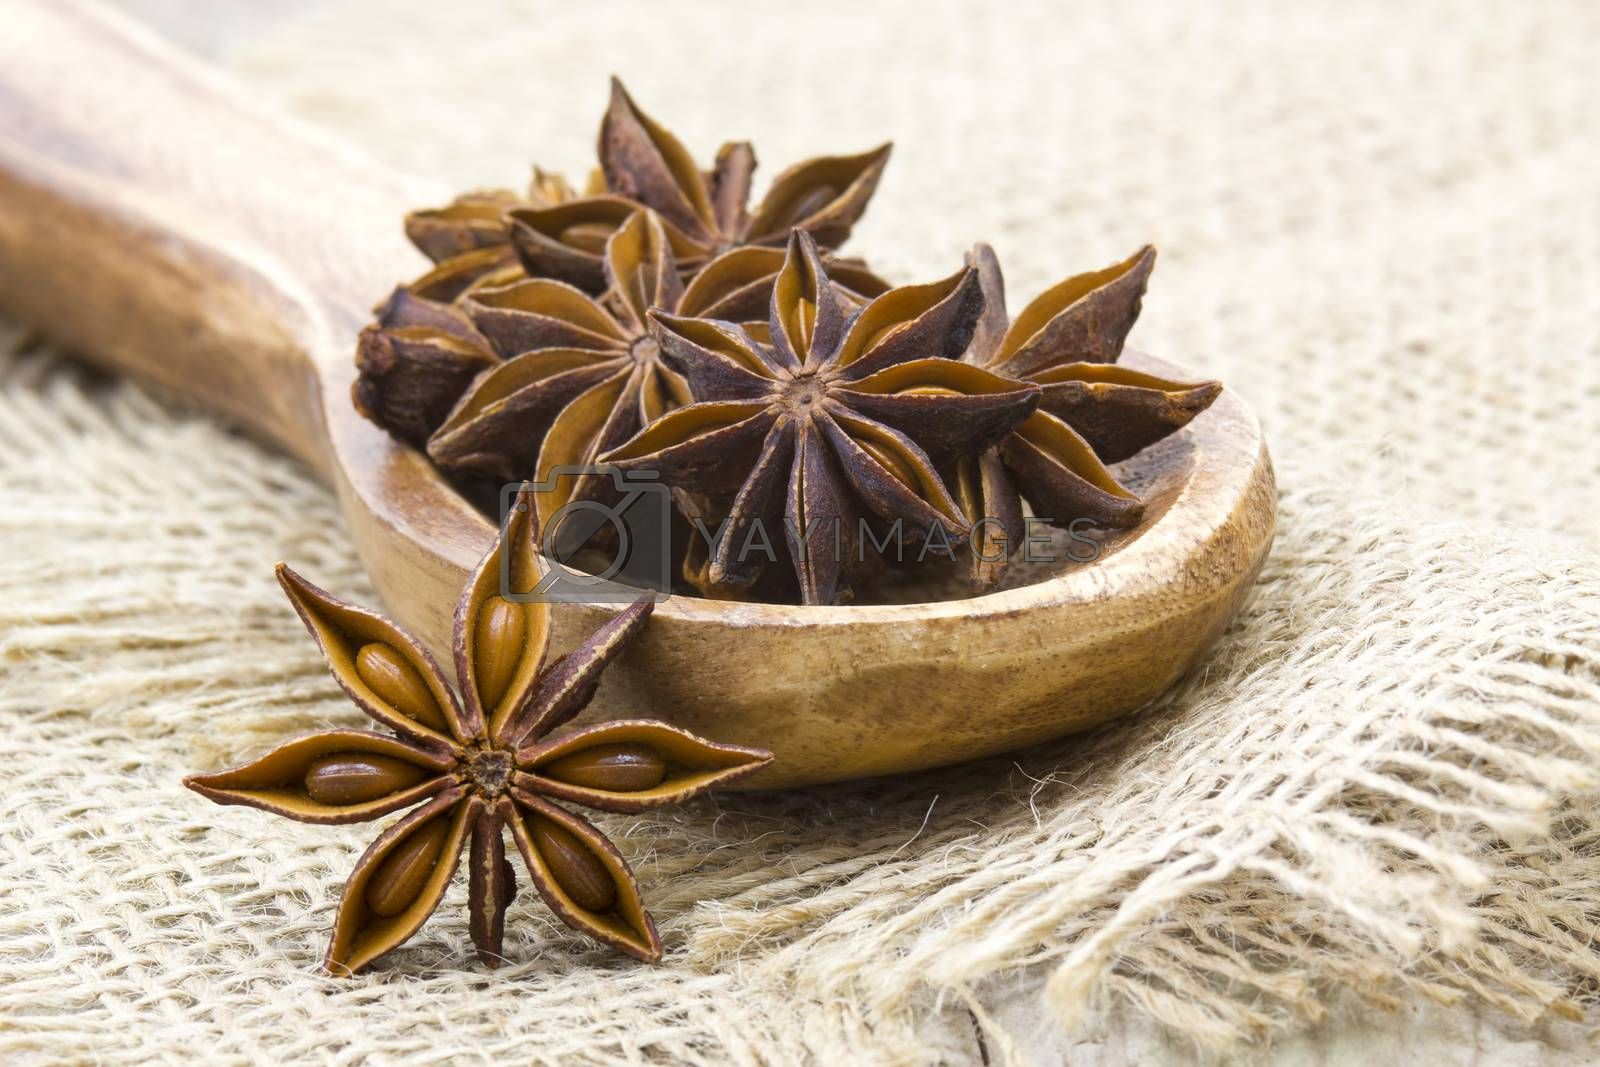 star anise on wooden spoon by miradrozdowski